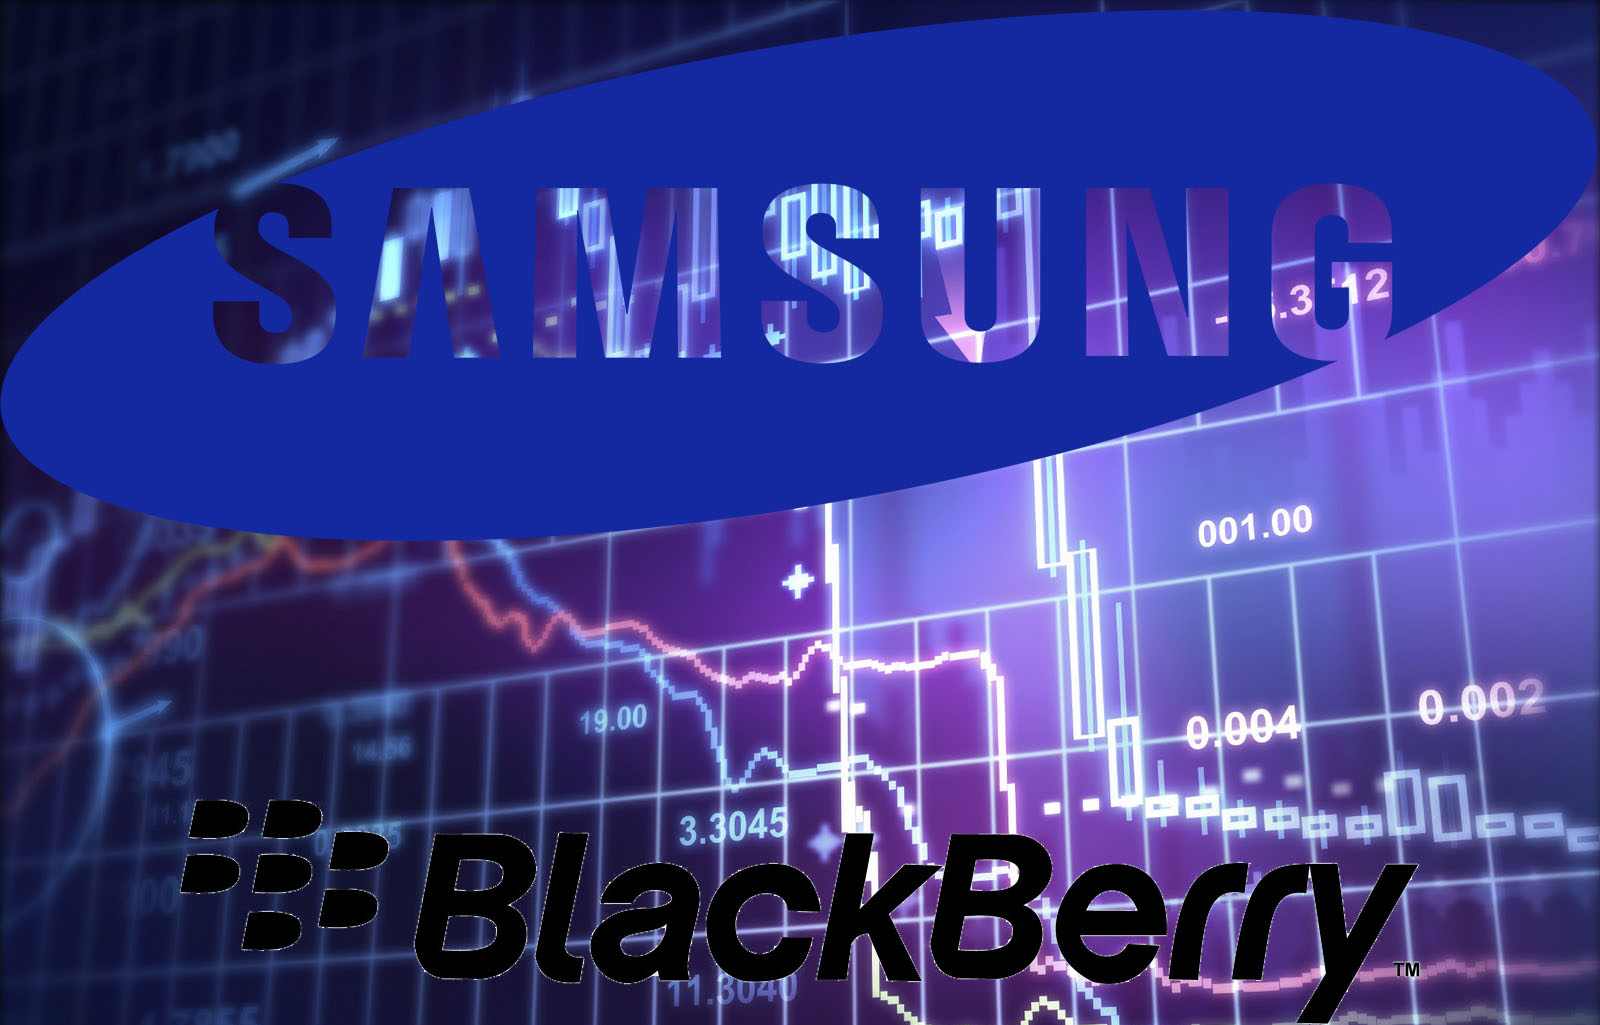 BlackBerry e Samsung collaborano per Enhanced Digital Transformation Solutions